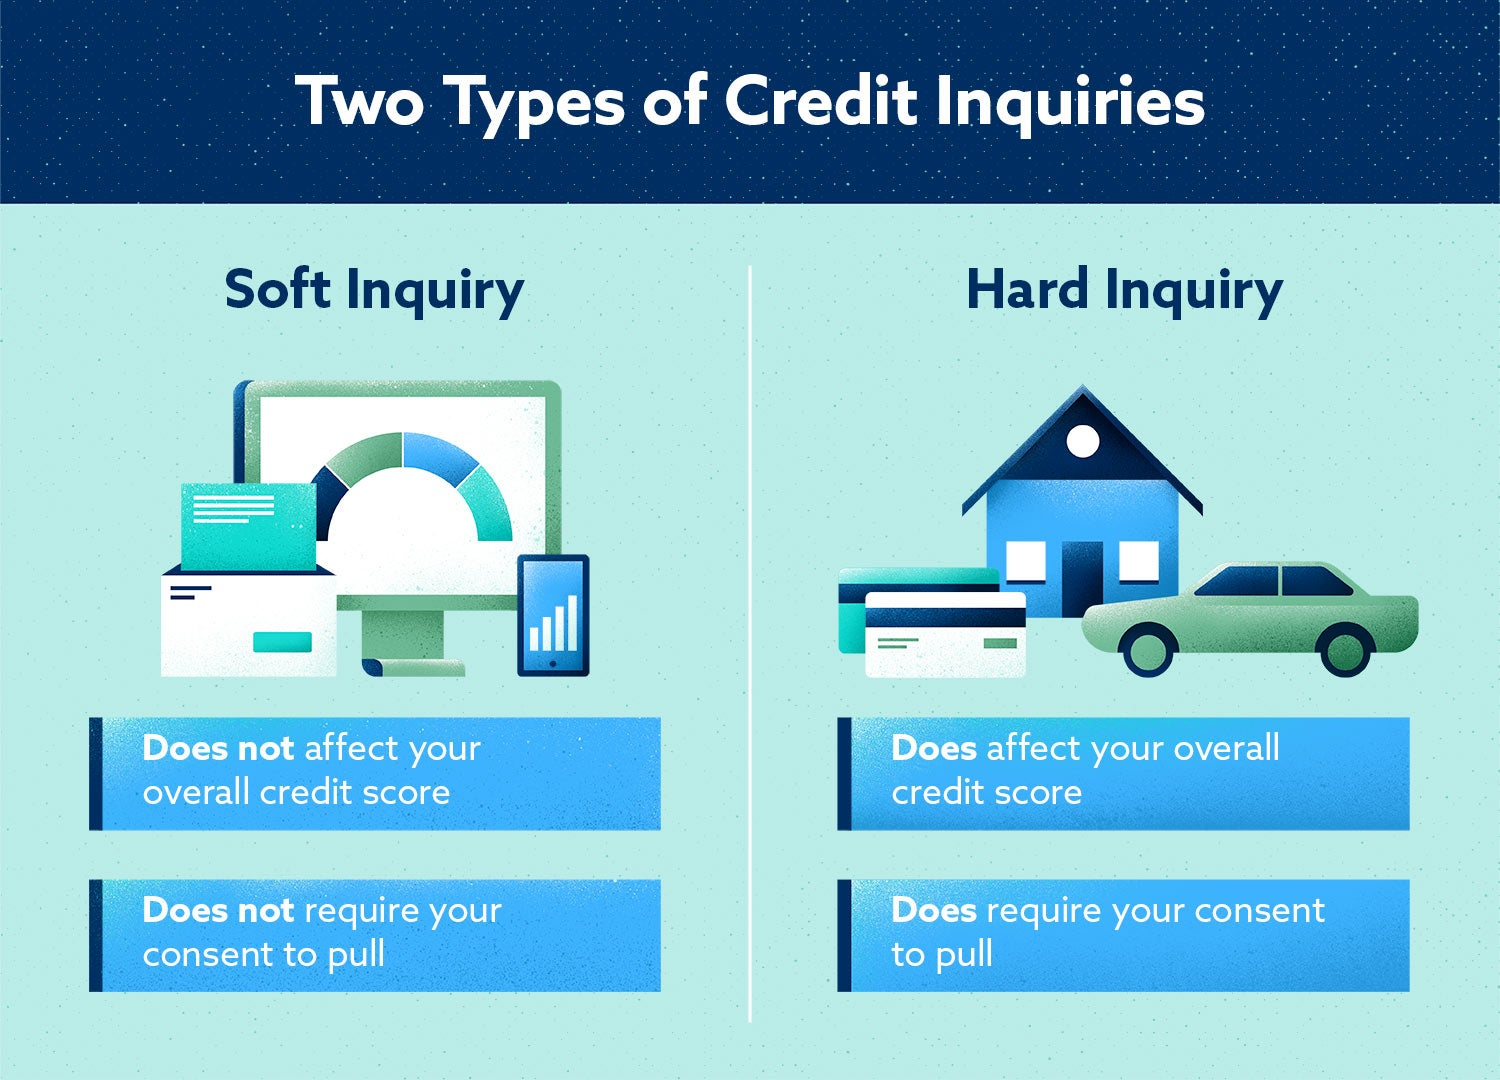 Two Types of Credit Inquiries Image